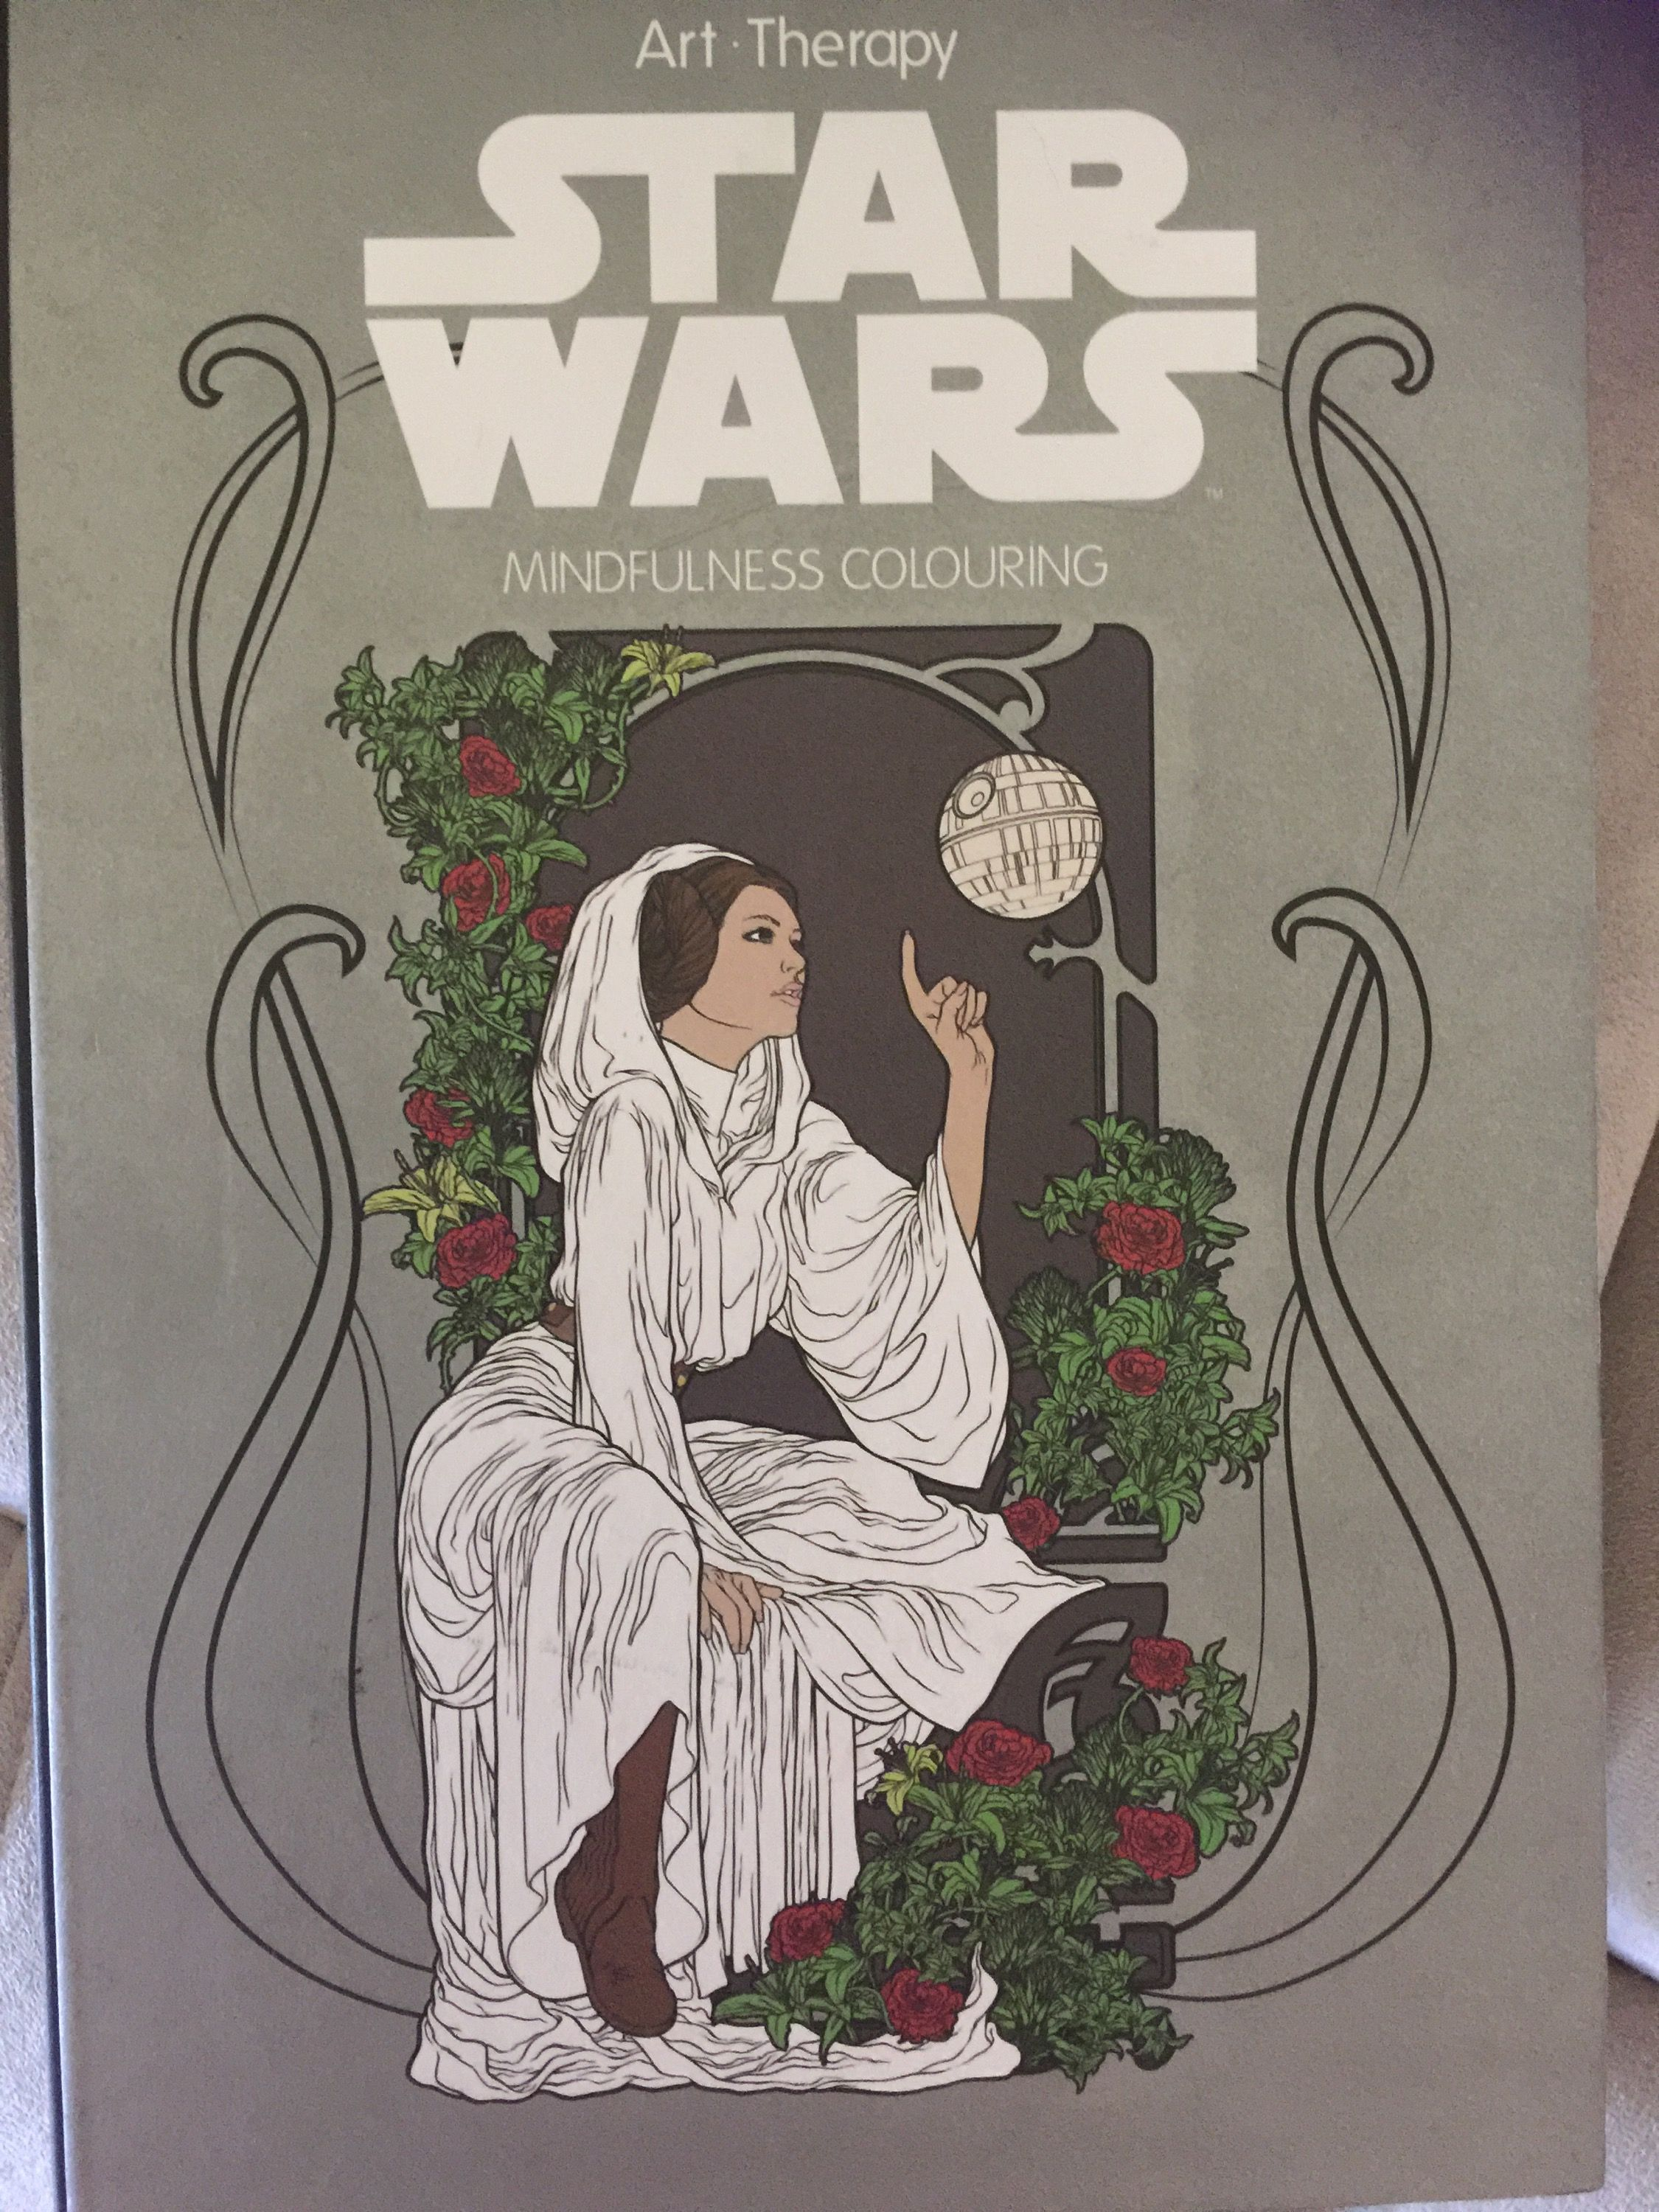 Star Wars Art Therapy Star Wars Coloring Book Coloring Books Star Wars Art